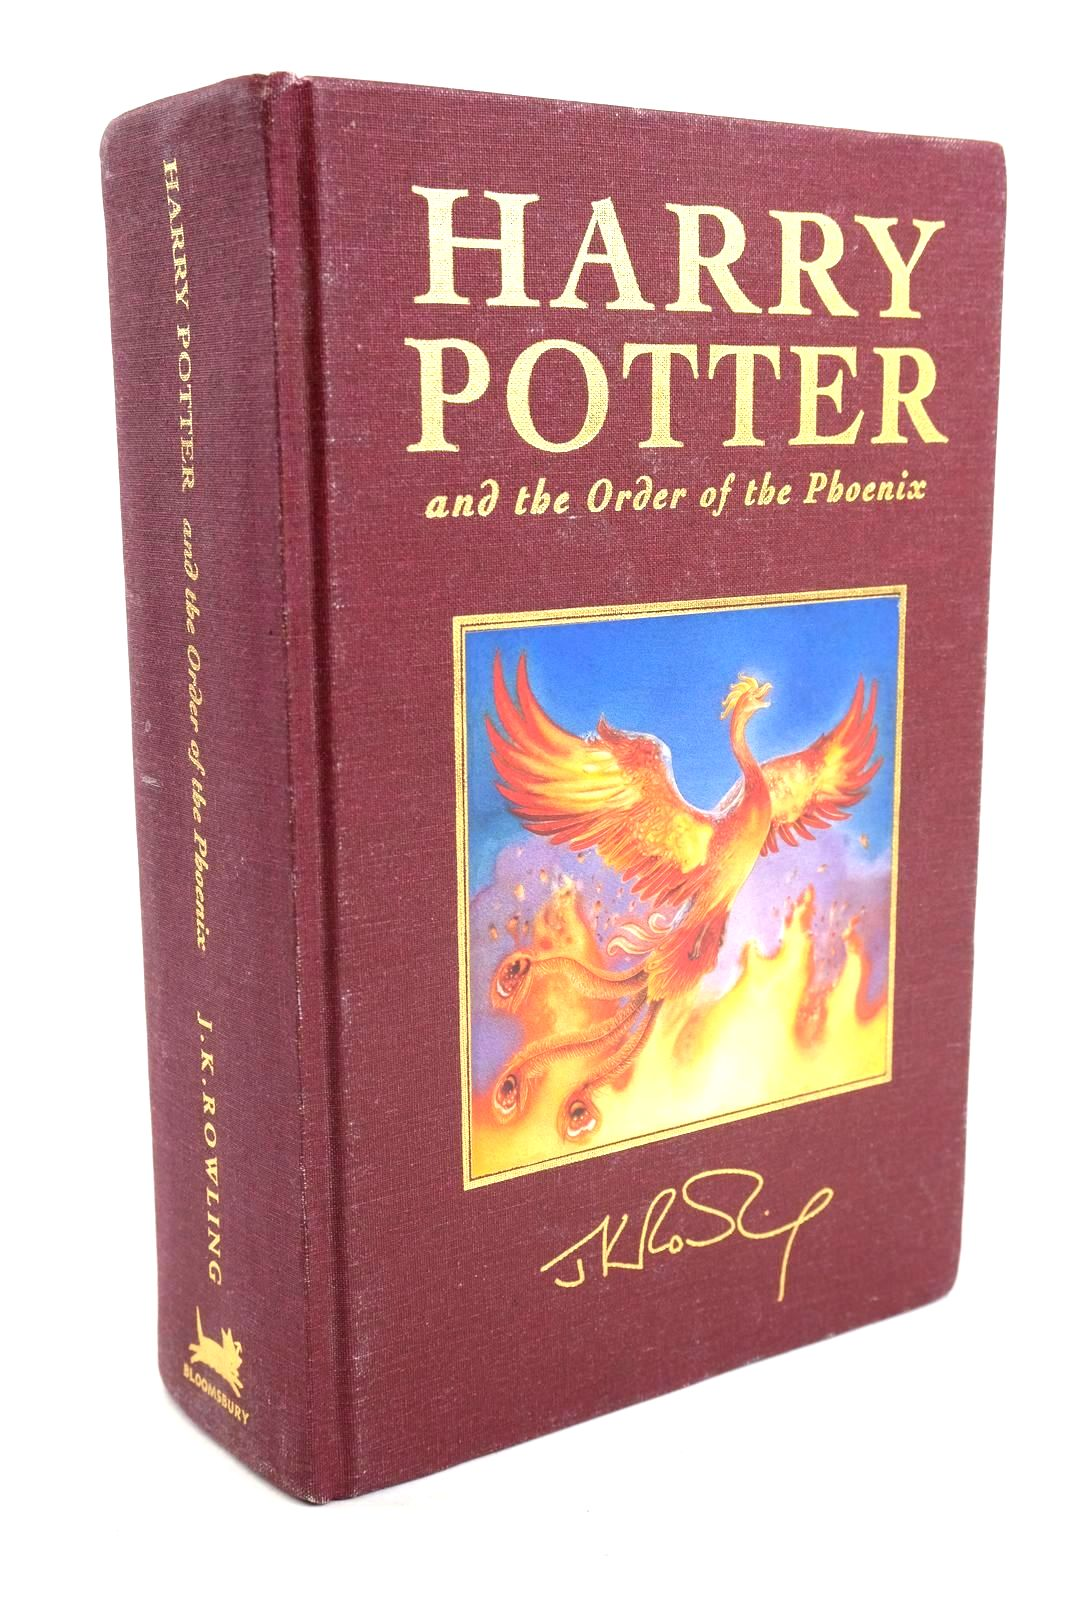 Photo of HARRY POTTER AND THE ORDER OF THE PHOENIX- Stock Number: 1319861